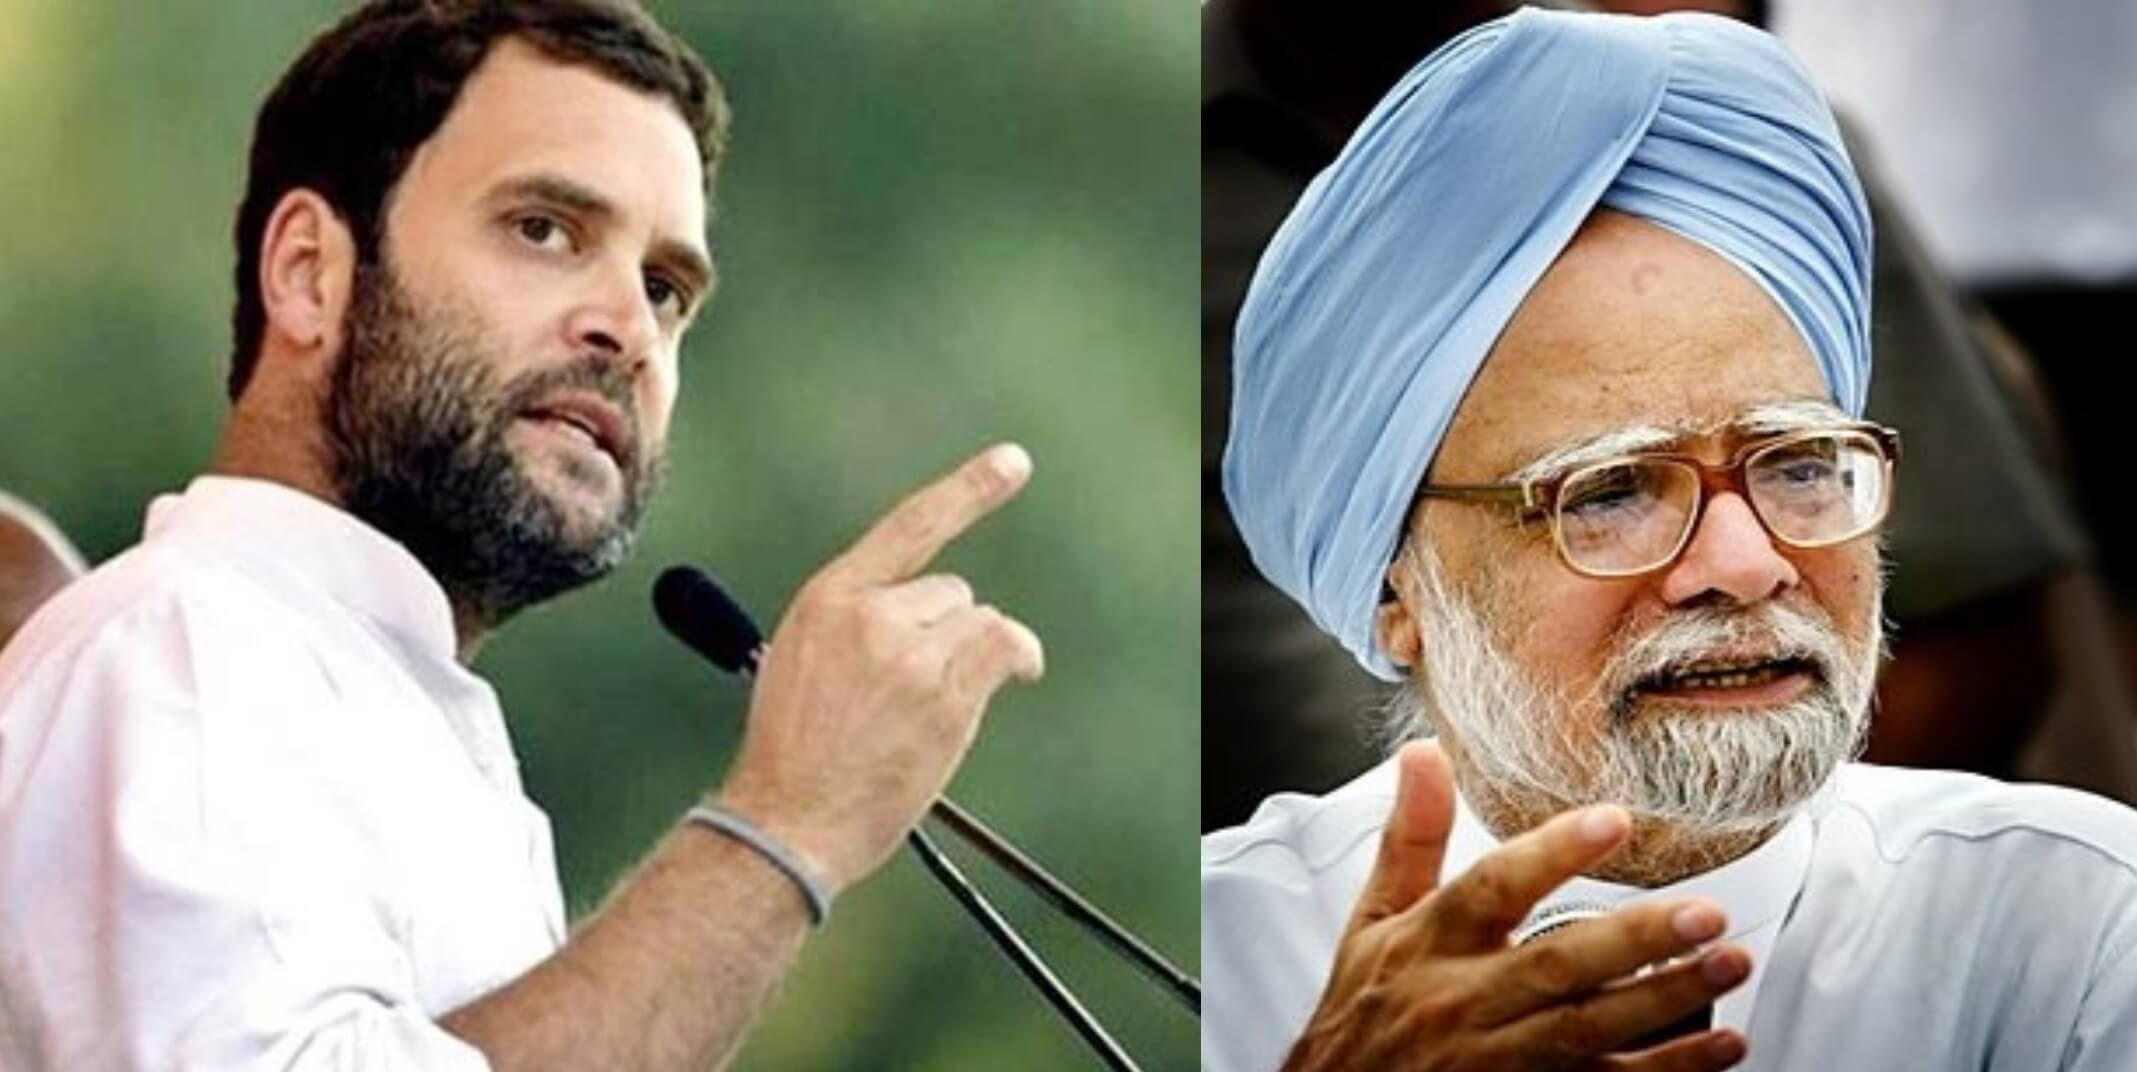 LS Polls 2019: RaGa Reconstitutes NECCC ahead of 2019 Polls, Manmohan Singh made Patron